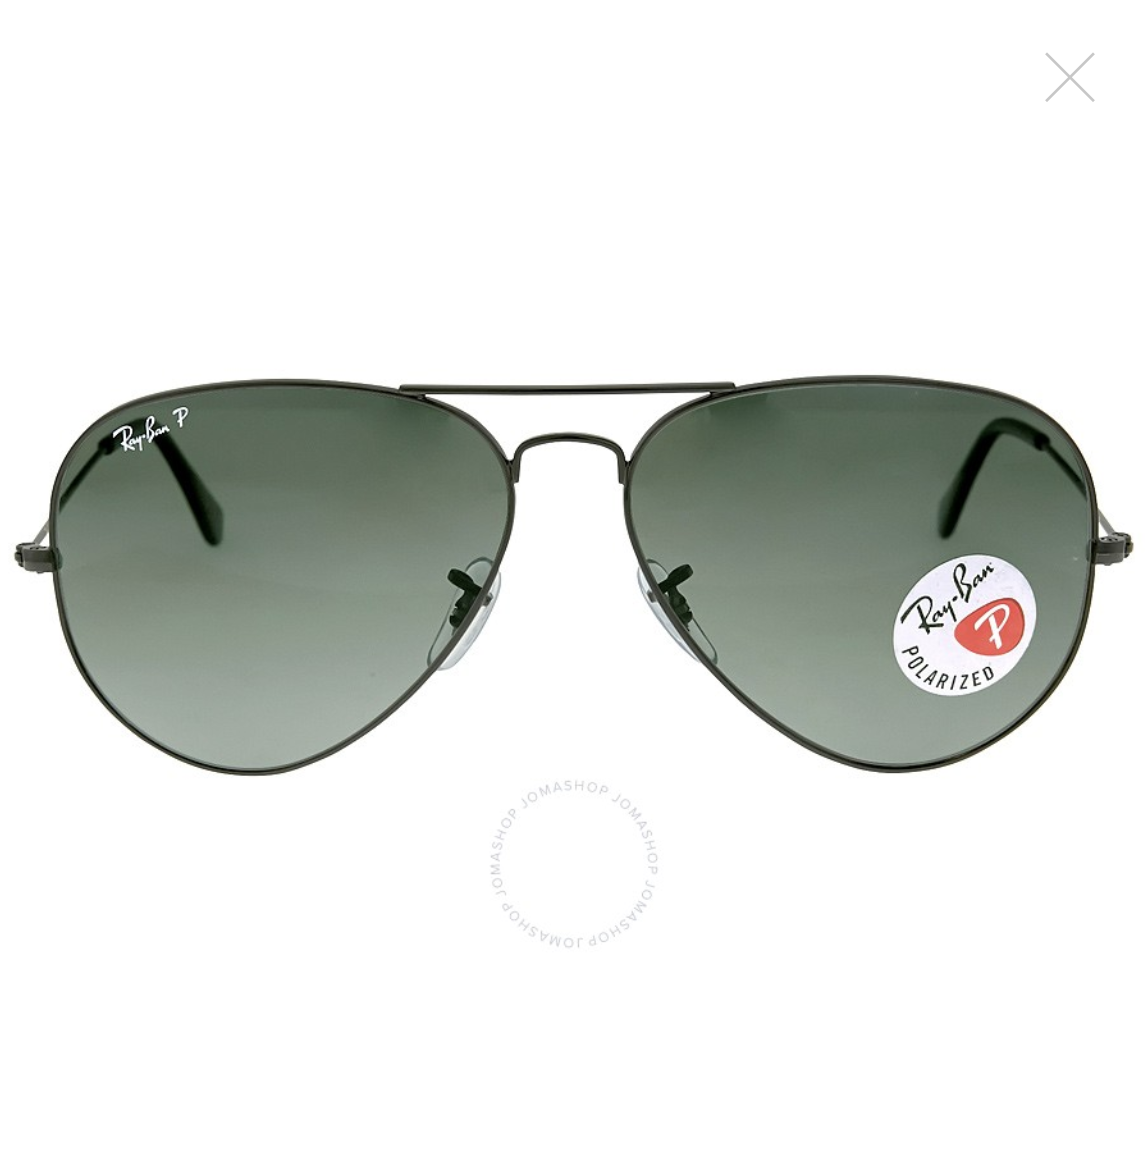 RAY-BAN-Aviator-Classic-Polarized-Green-Classic-G-15-Sunglasses-RB3025-002-58-62-14